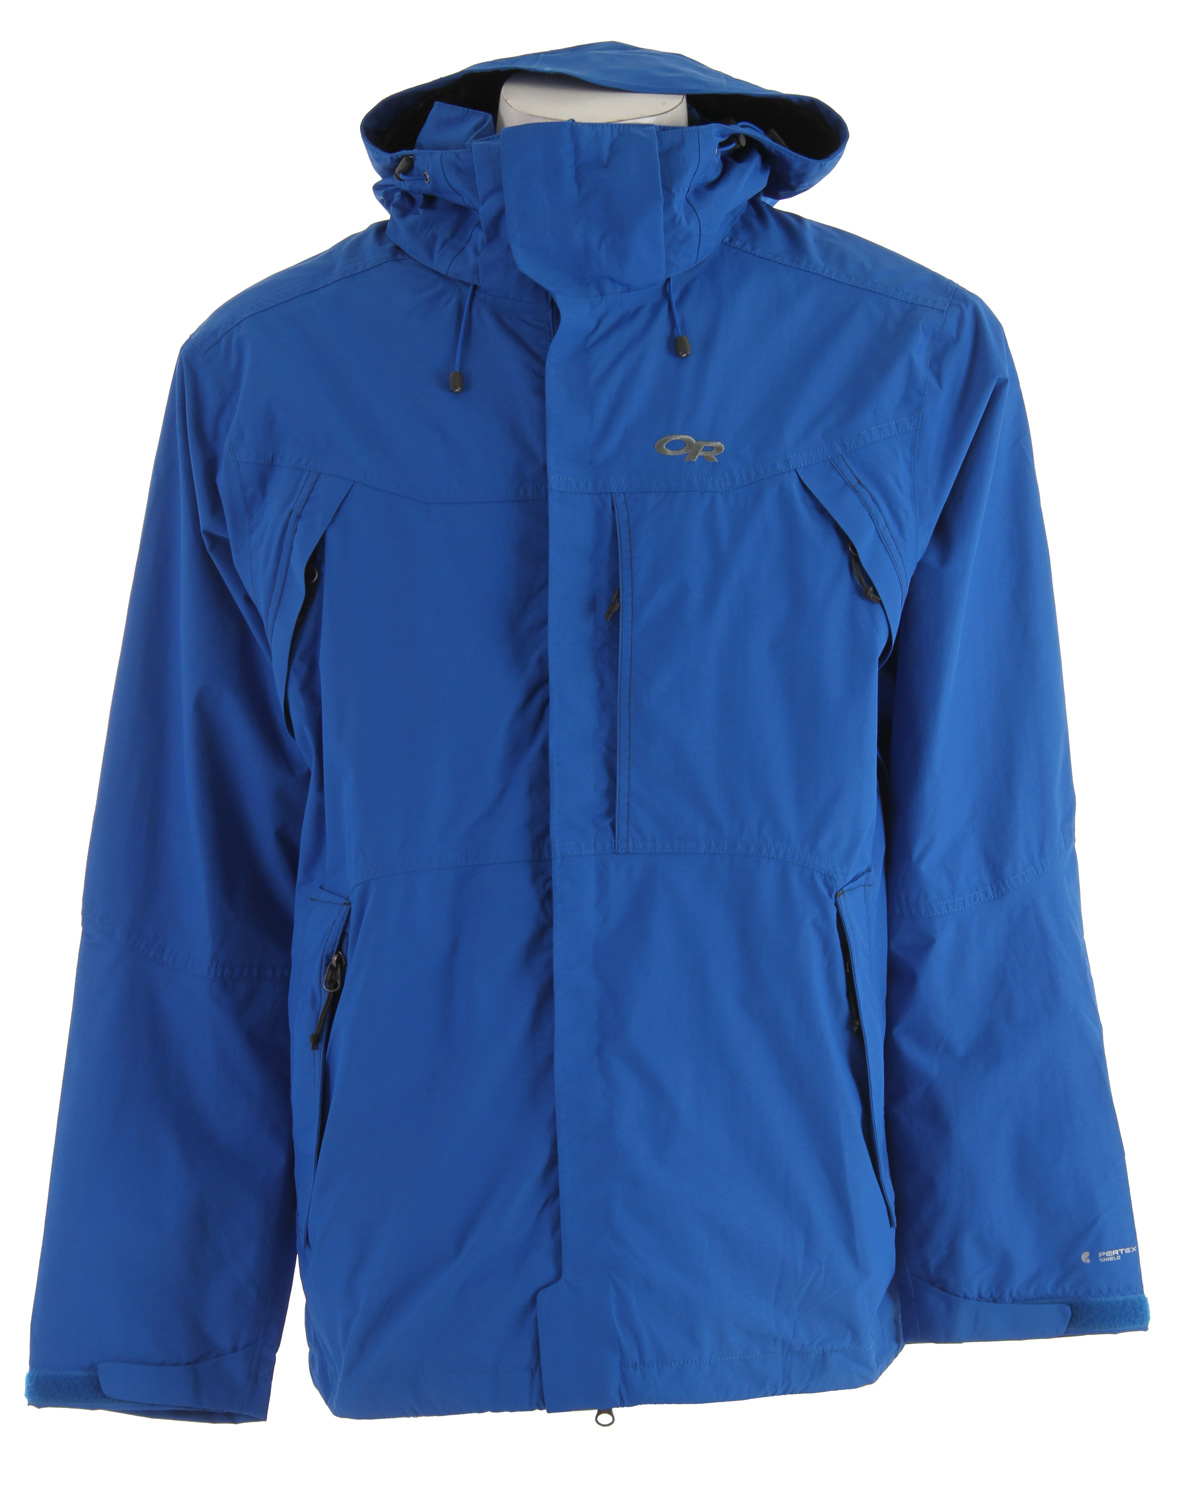 Ski Outdoor Research Backbowl Ski Jacket - $145.95